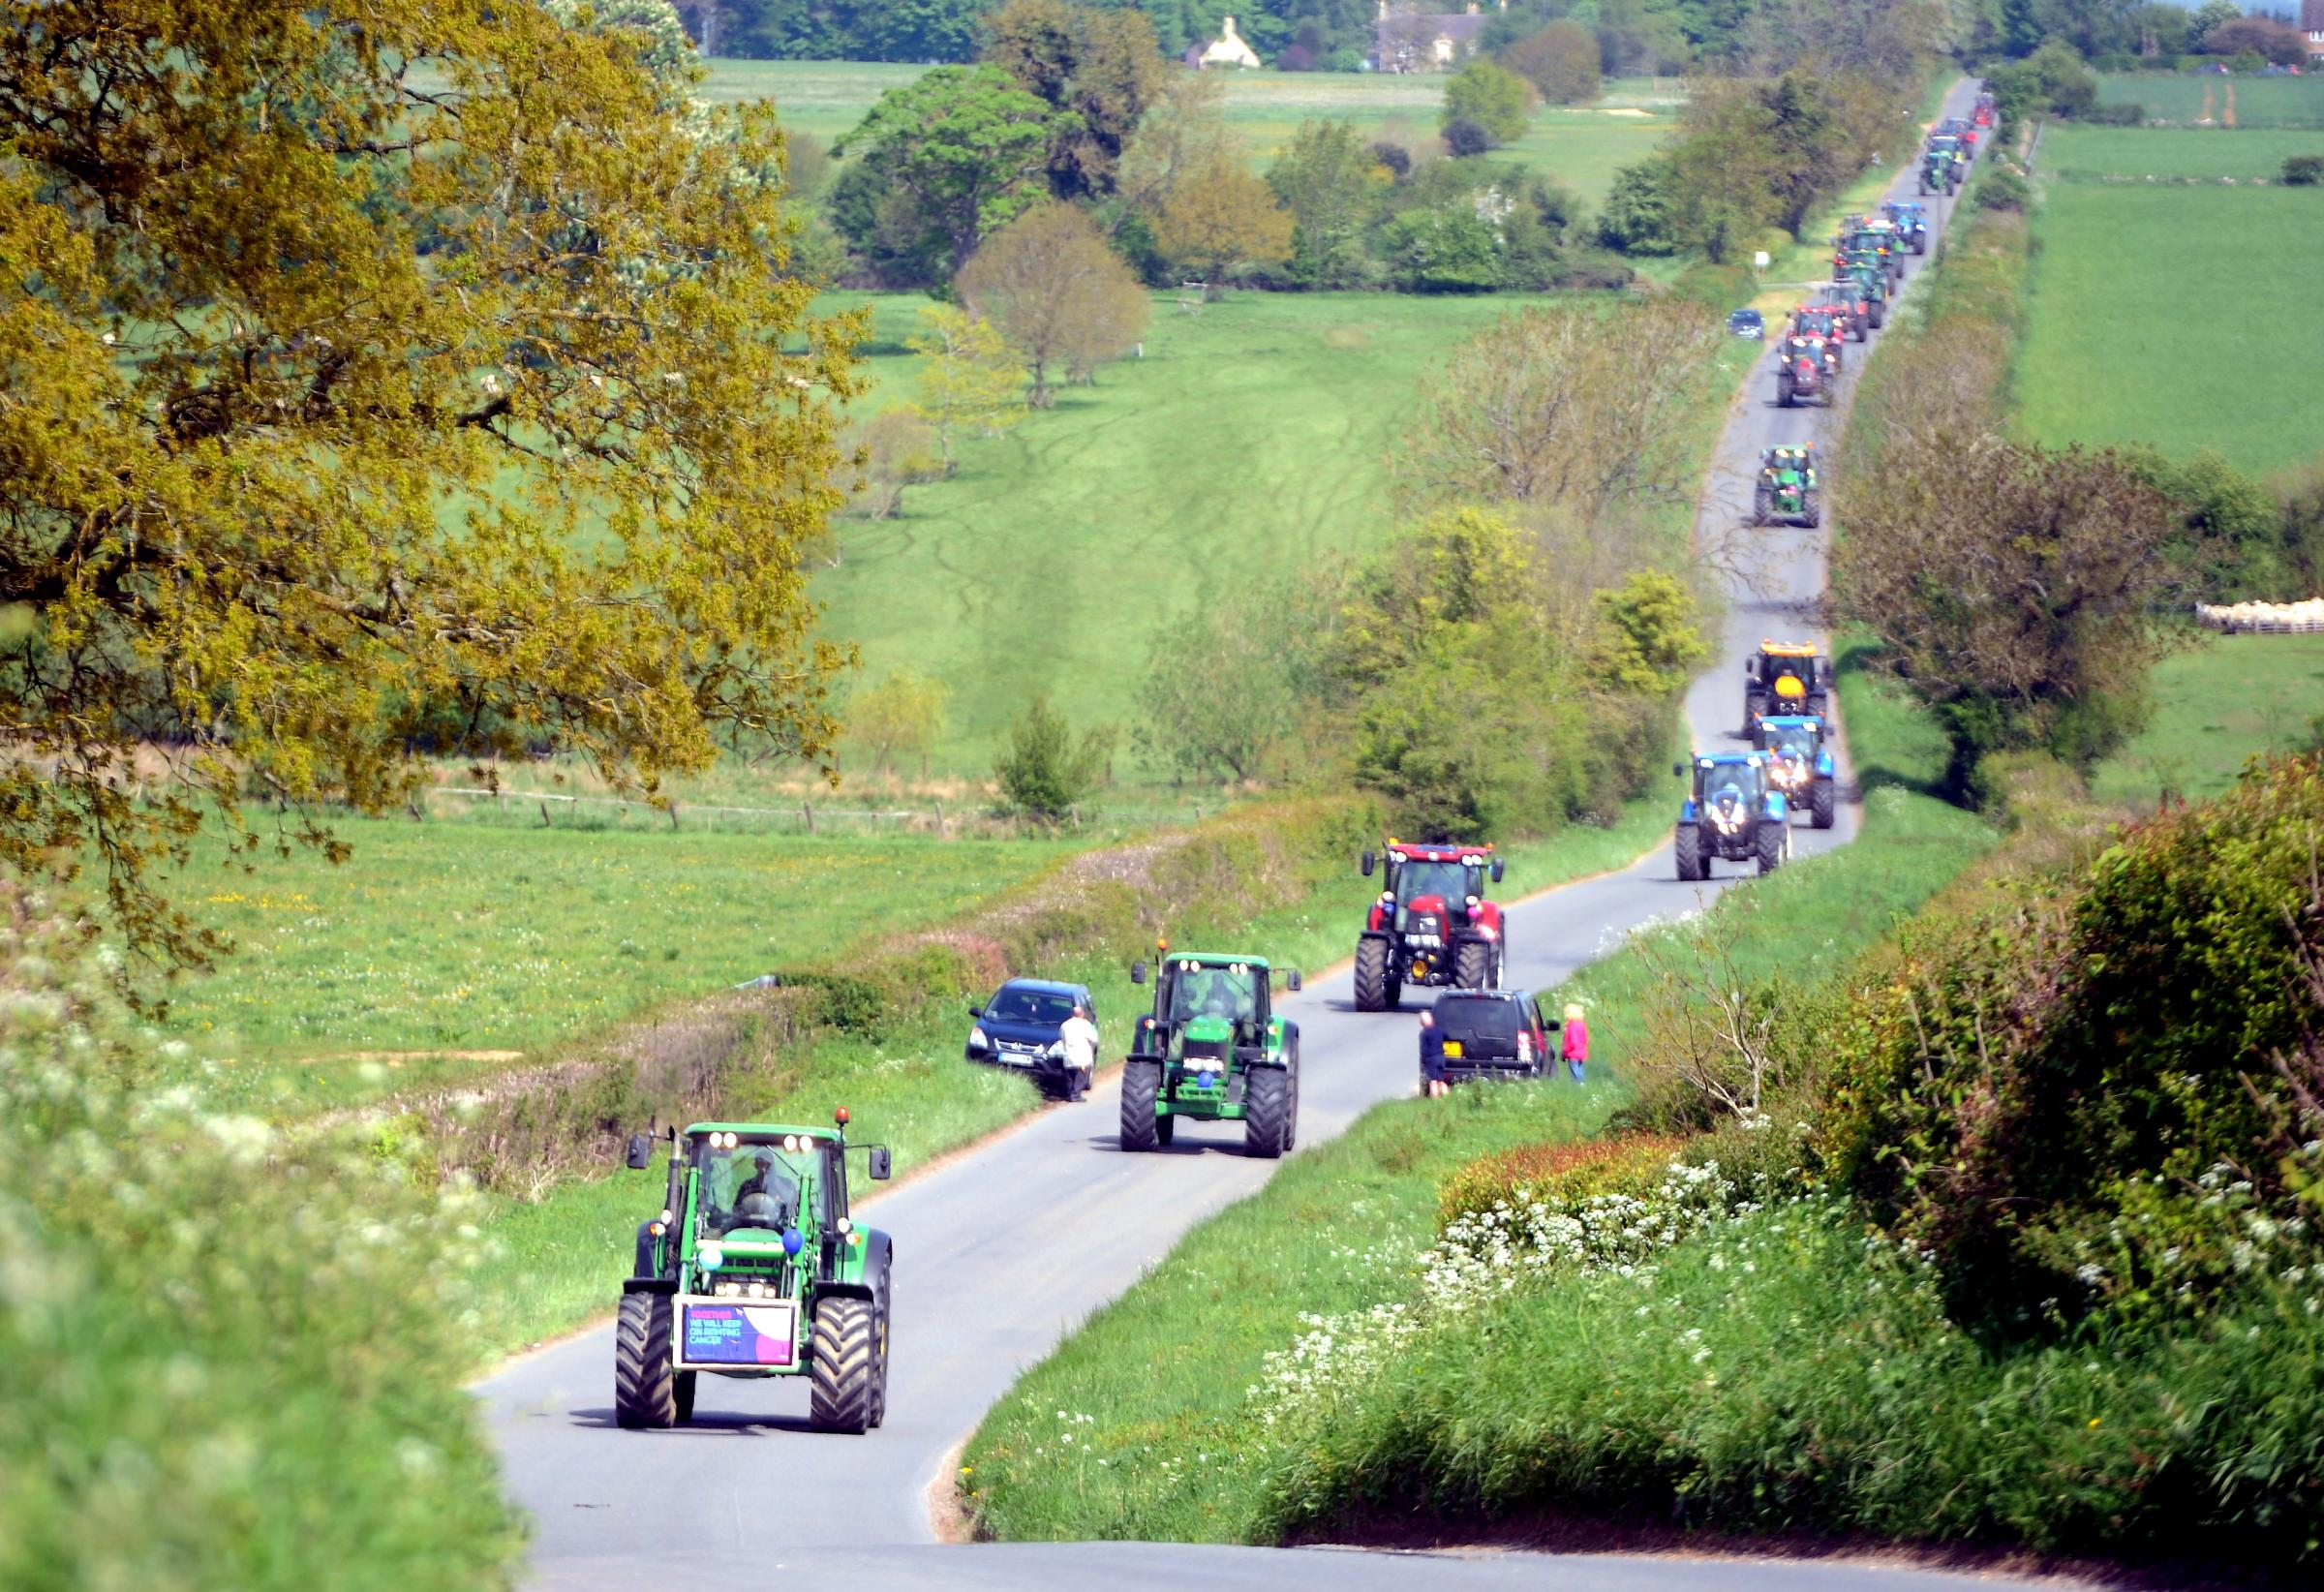 Over 70 tractors take part in the Moreton Show Tractor Committee and North Cotswold Tractor Club Bluebell Tractor Run in aid of Cancer Research UK through the Cotswolds, on Sunday 13th May 2018.  Pic: Paul Nicholls